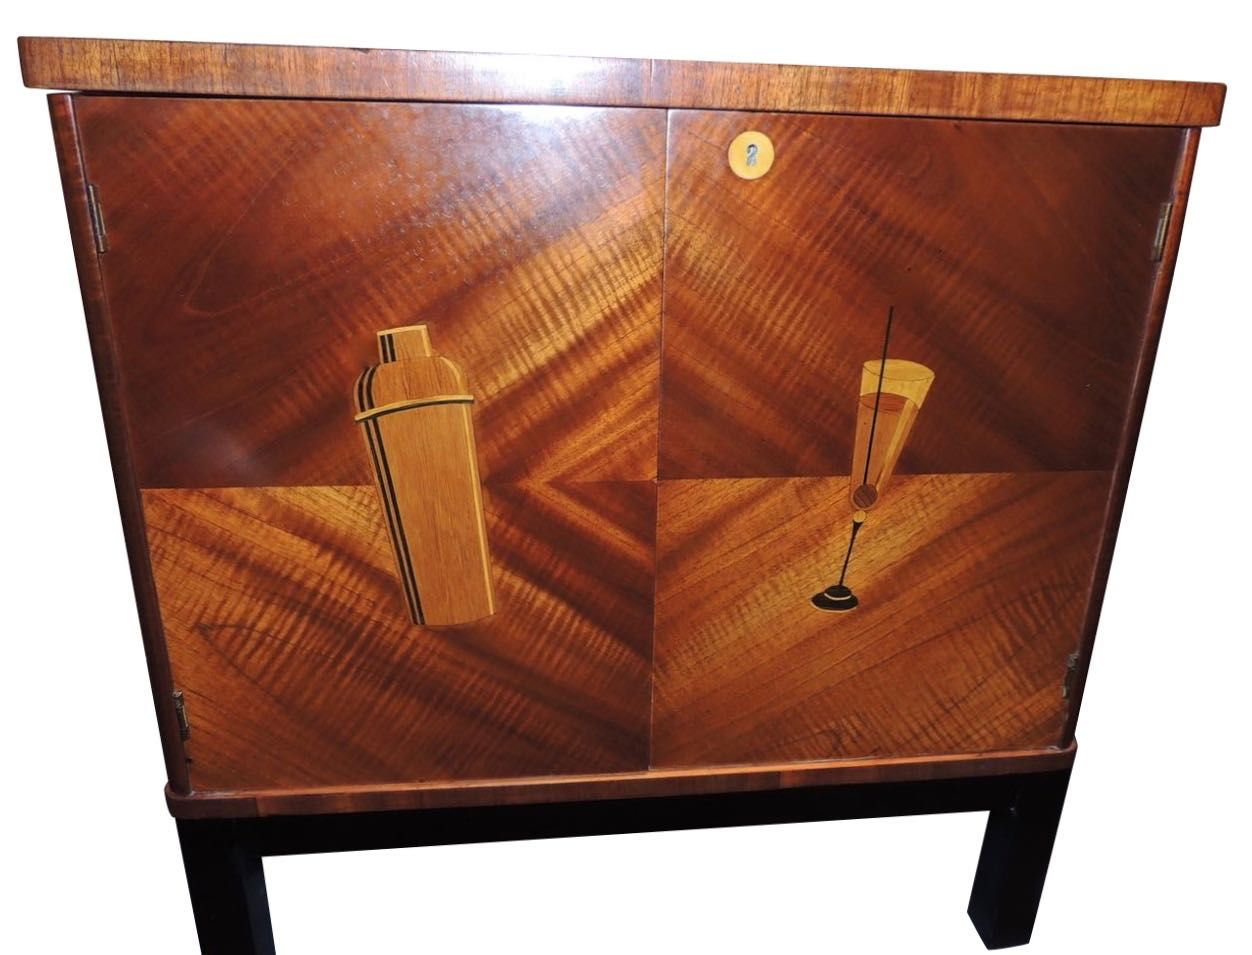 Gentil New Art Deco Furniture. Fine Art Art Deco Collectioncom Specializes In  French Furniture Antique With